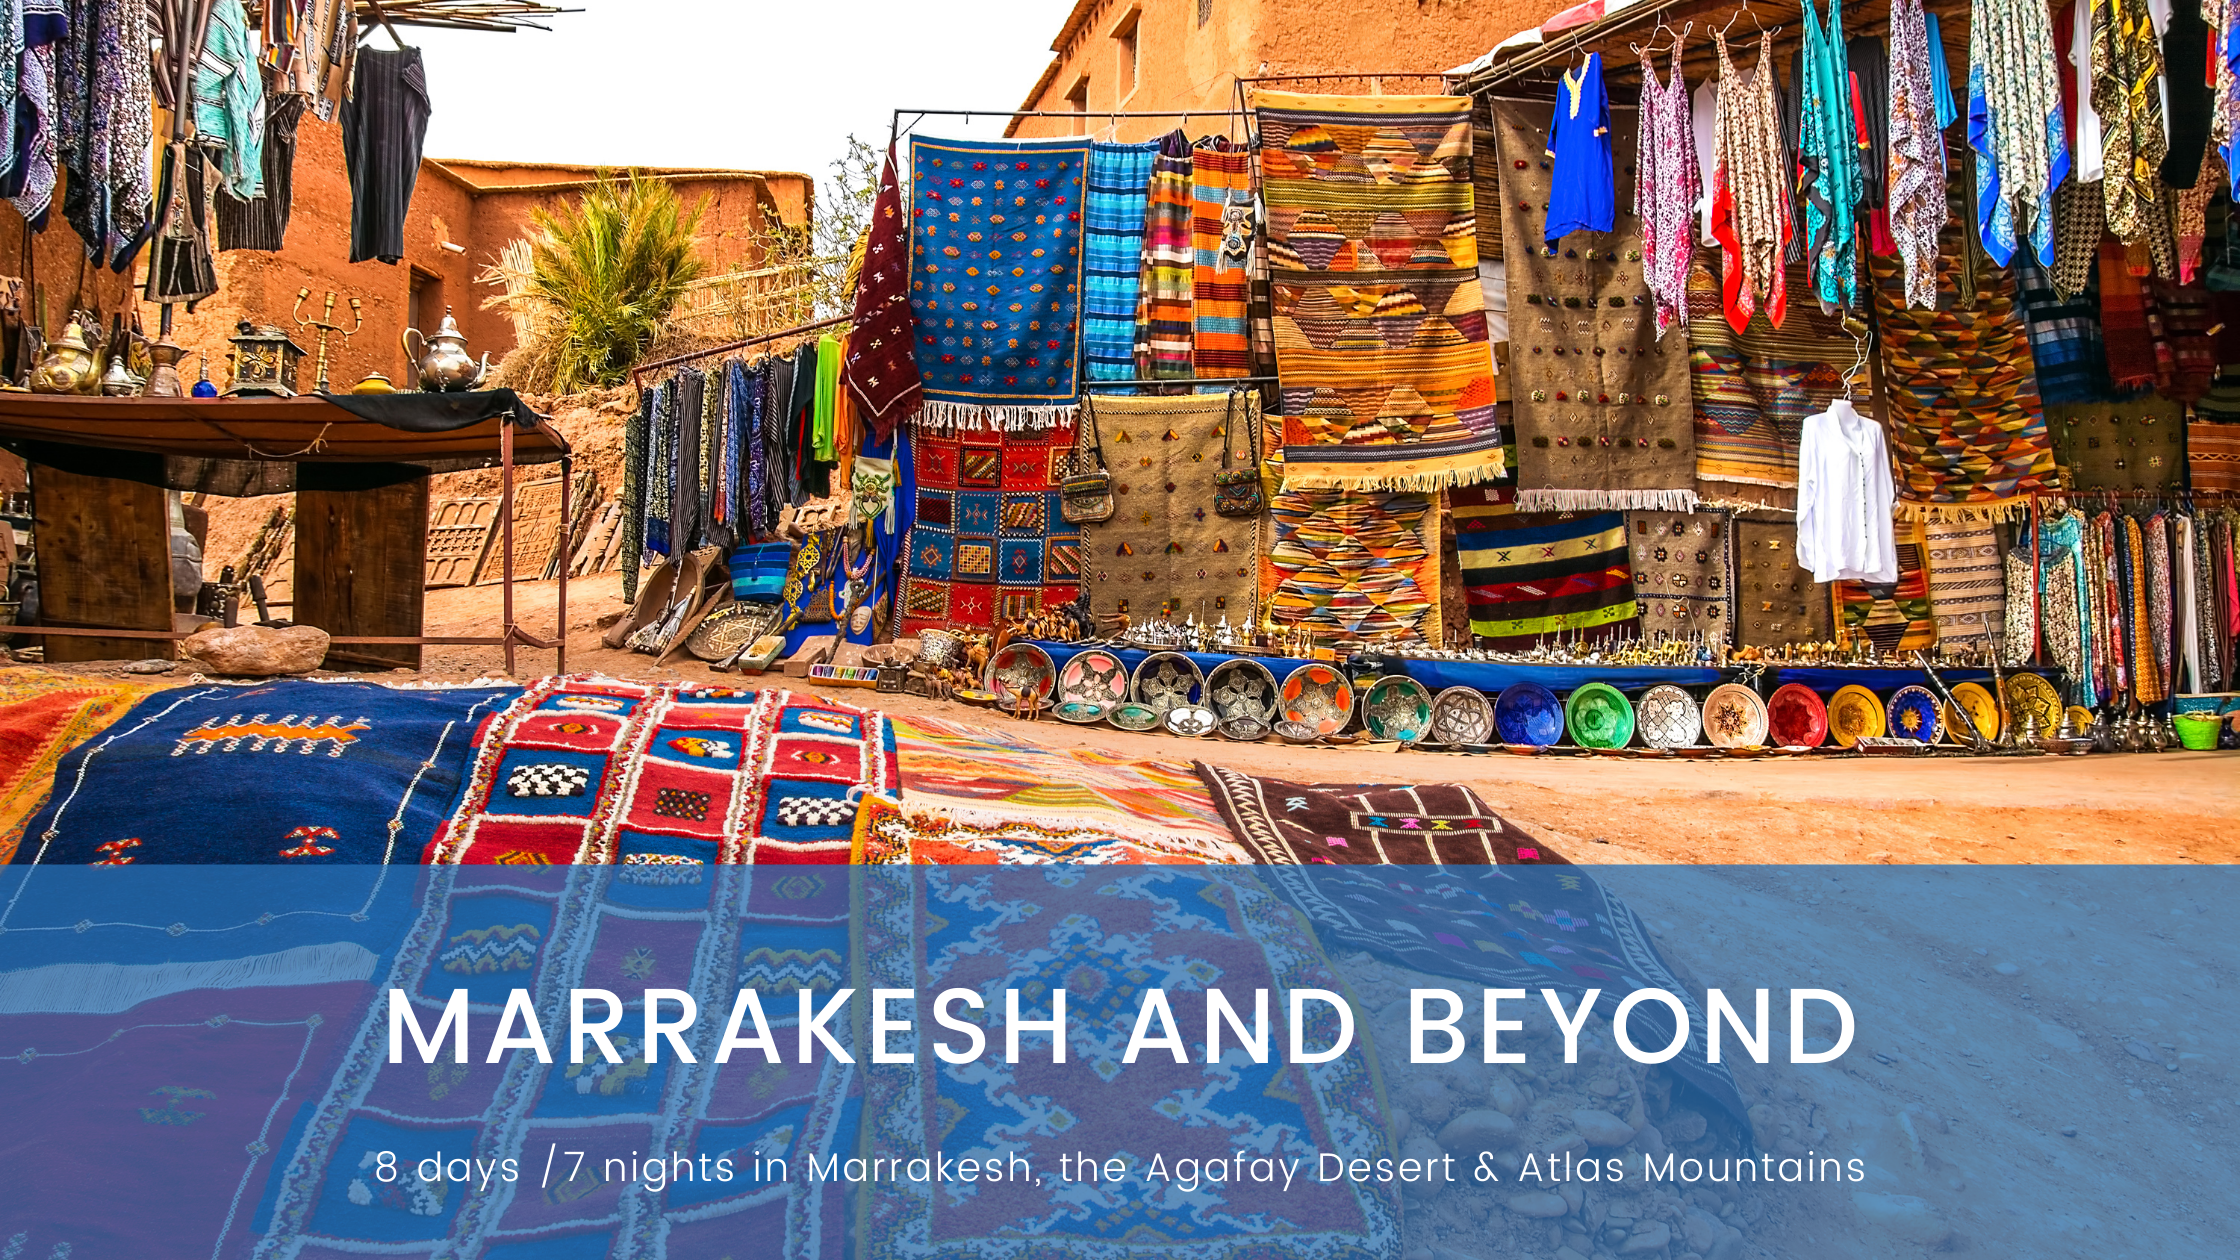 Marrakesh and Beyond